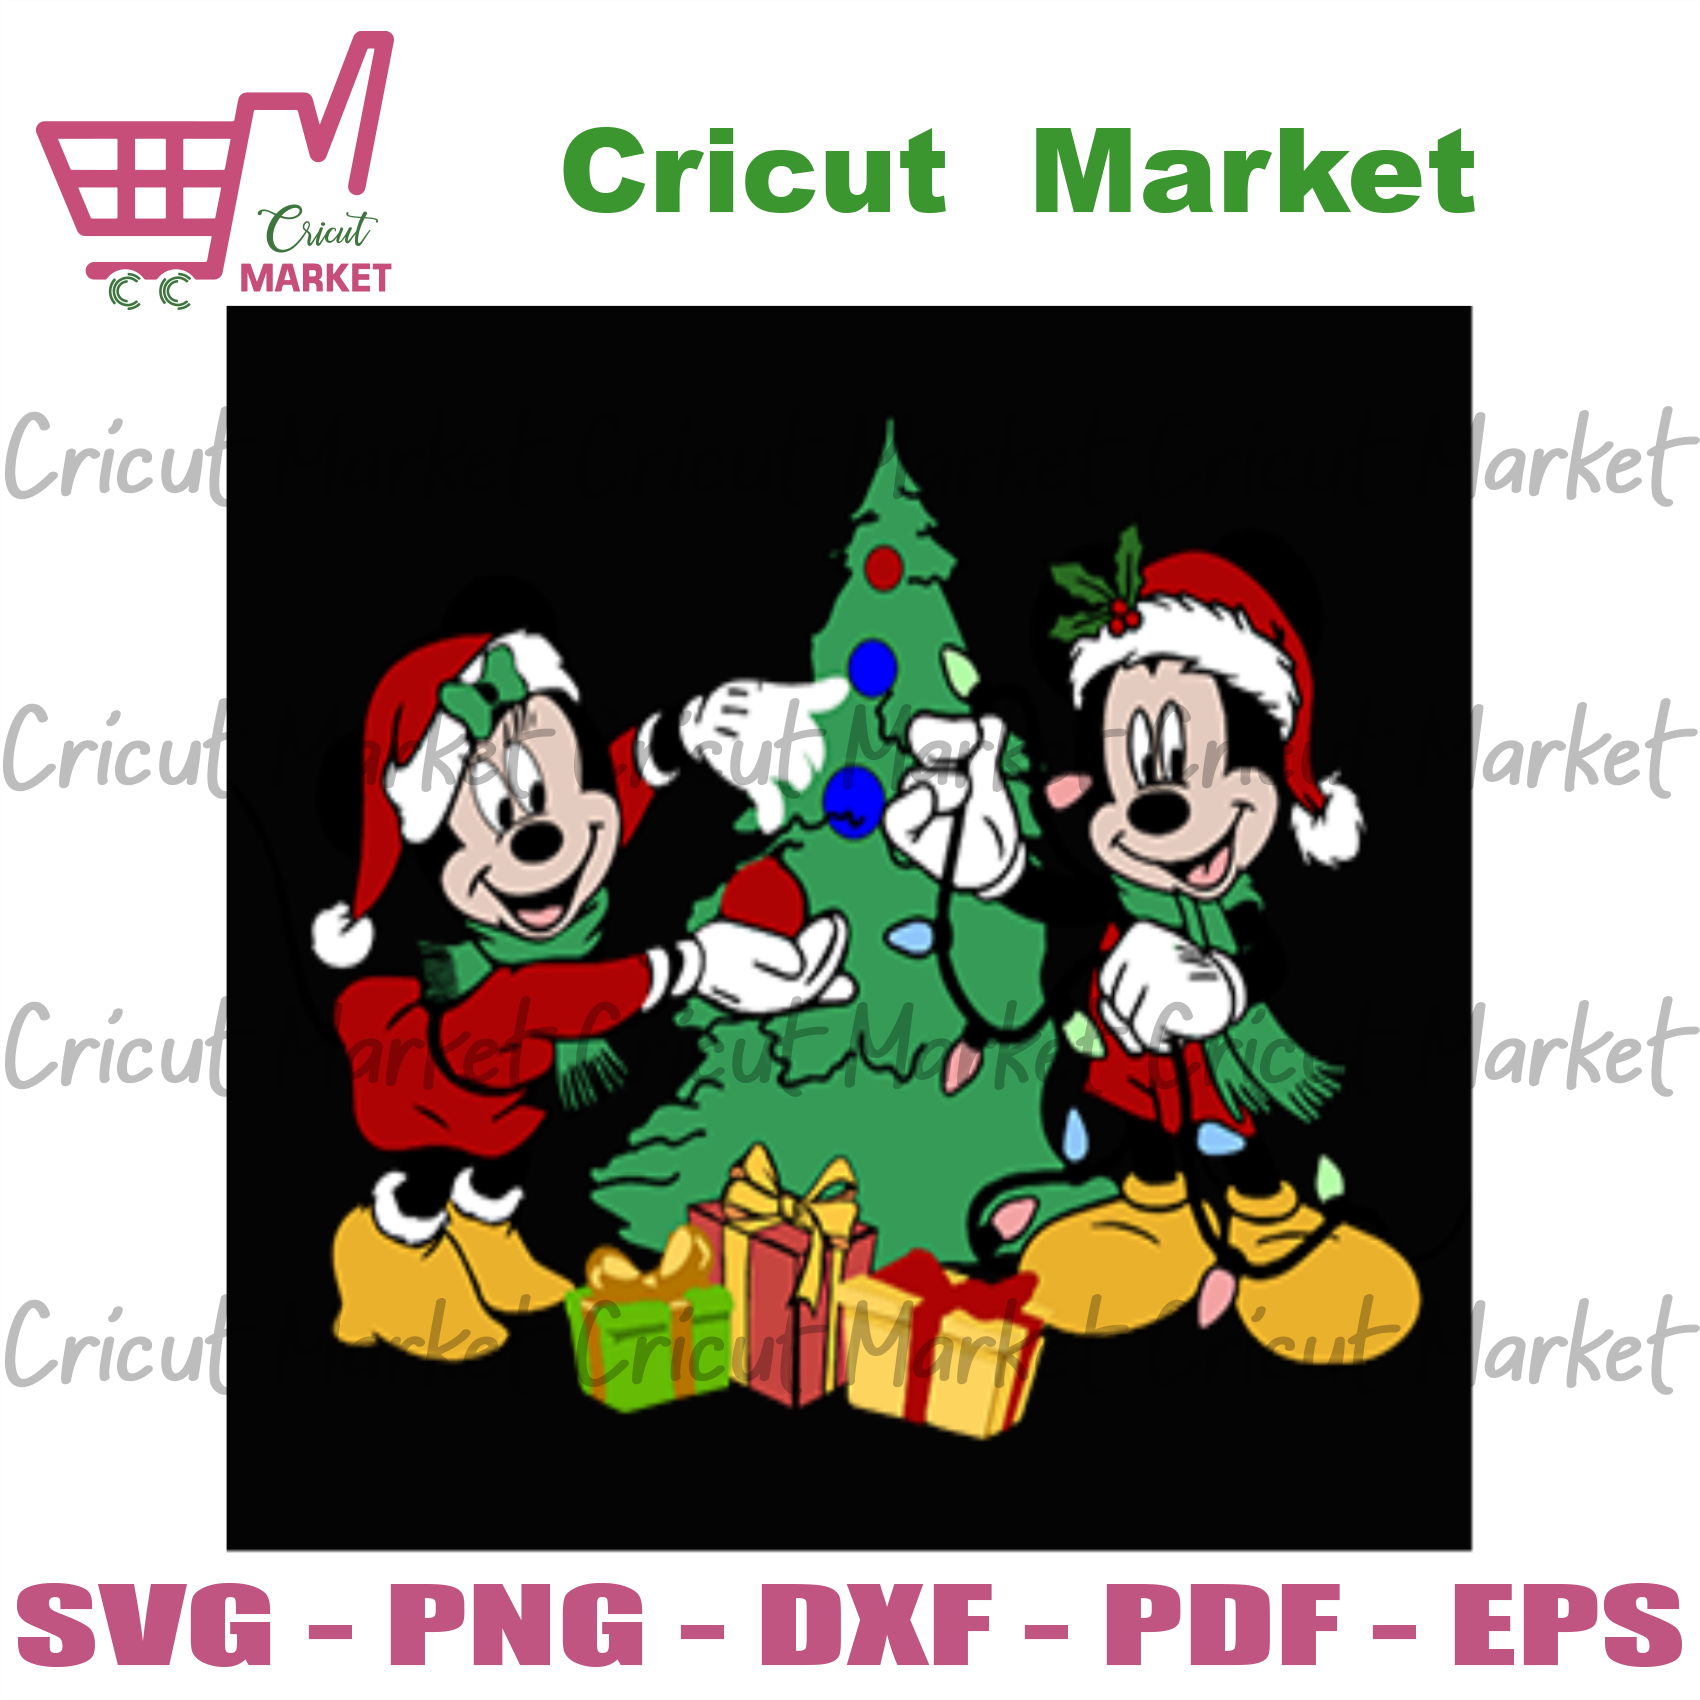 Mickey Christmas Svg, Christmas Svg, Mickey Mouse Svg, Christmas Tree Svg, Christmas Gifts Svg, Disney Christmas Svg, Merry Christmas Svg, Christmas Light Mickey Mouse, Christmas Ornament Svg